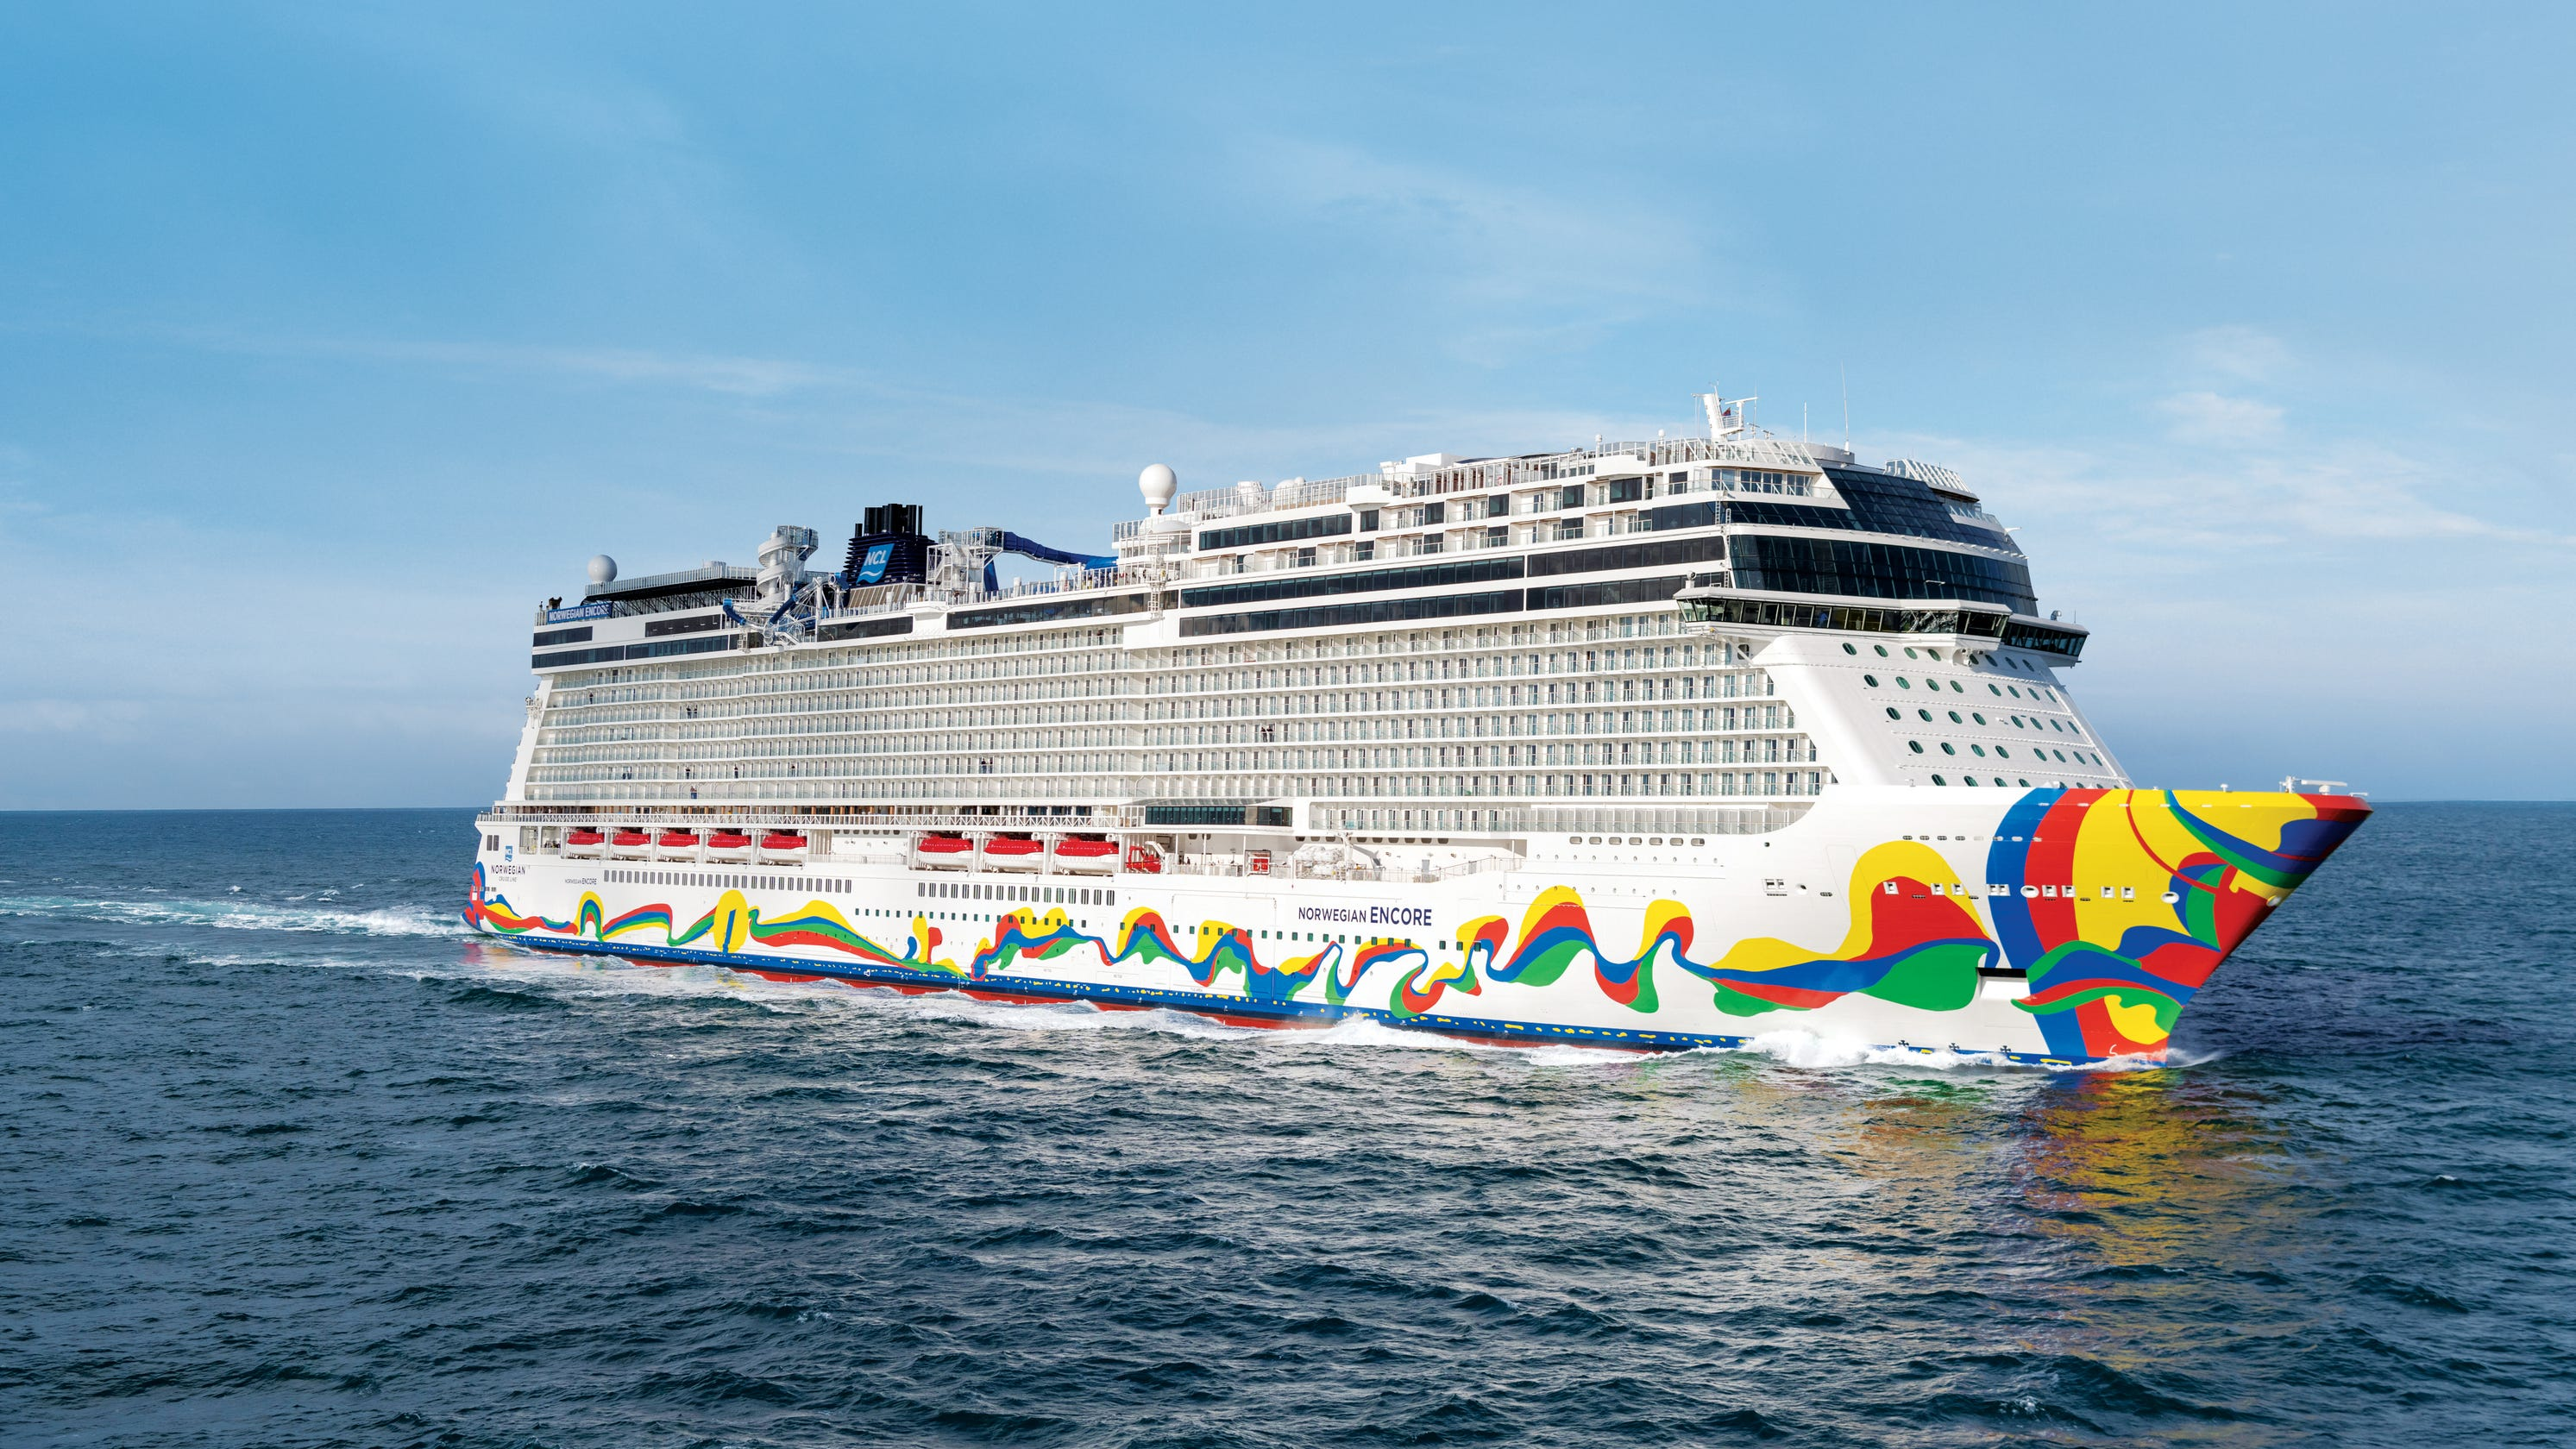 Norwegian Cruise Line will resume sailing in Europe, Caribbean in late July